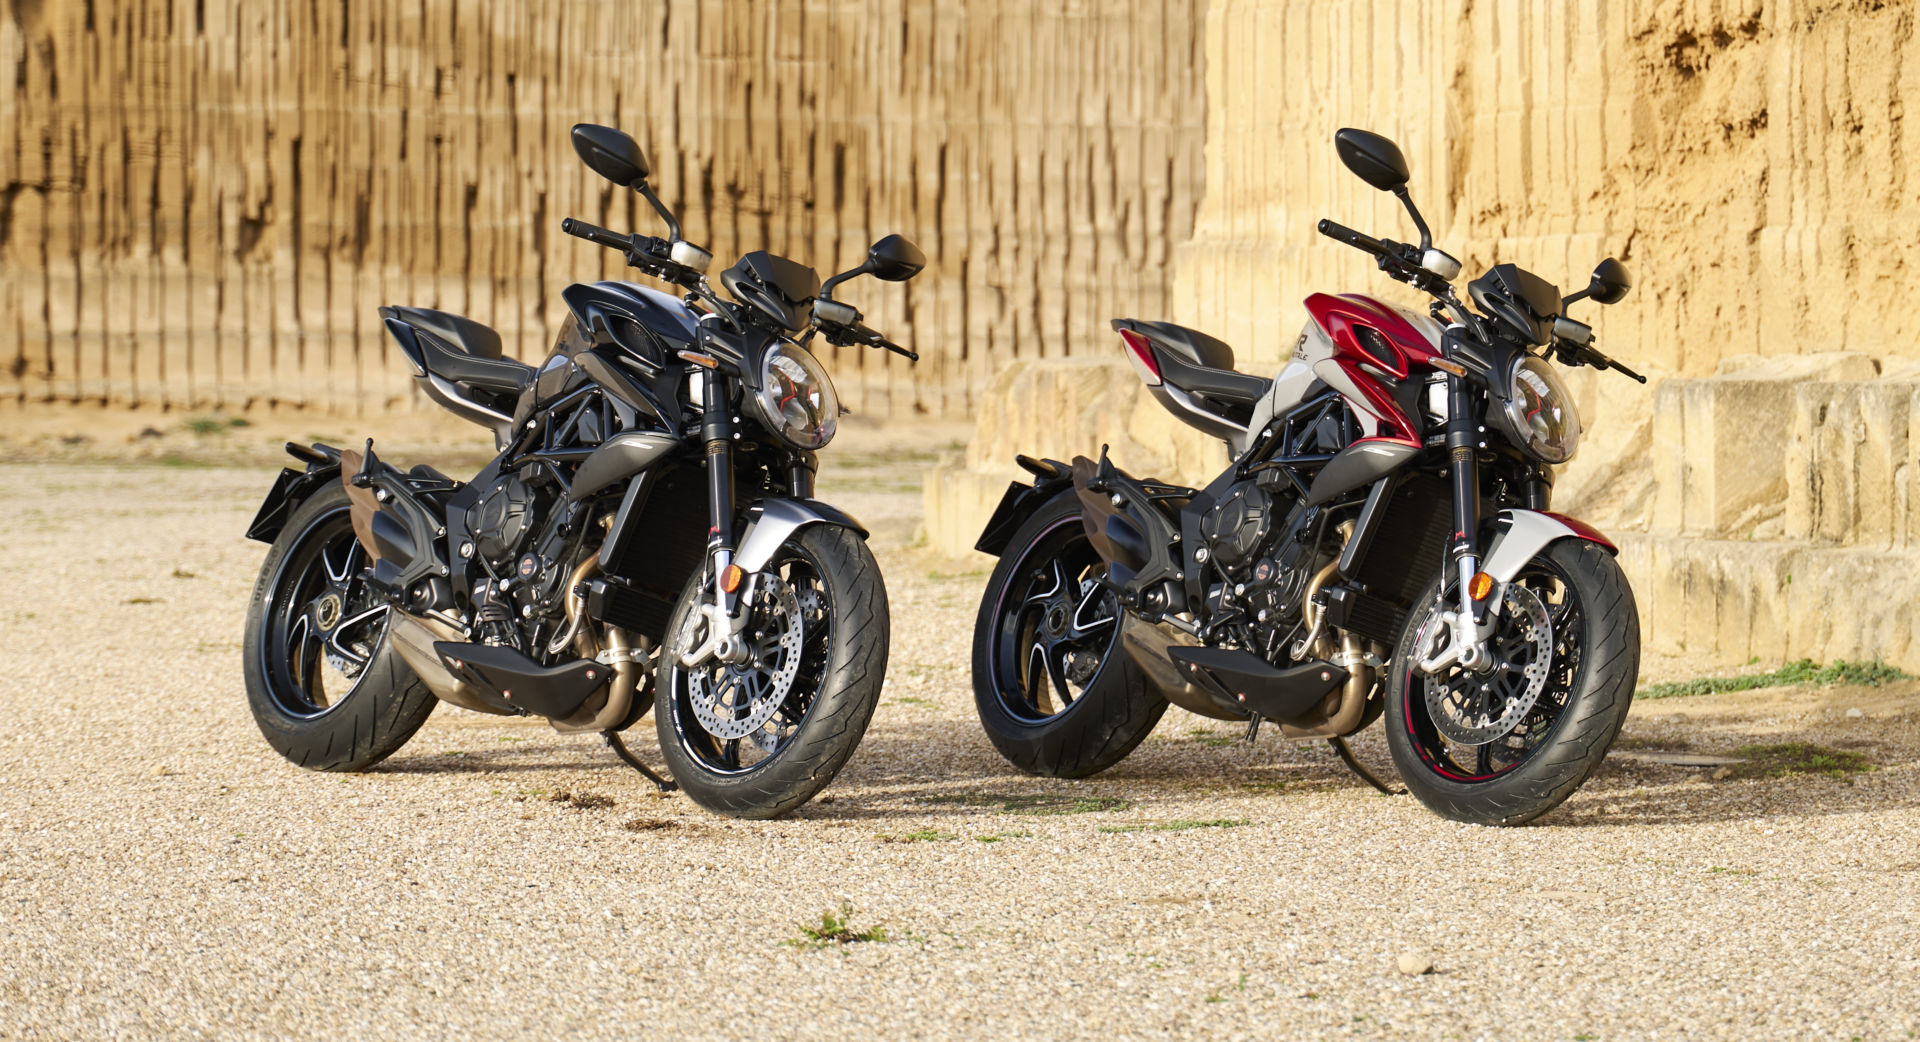 A 2021 MV Agusta Brutale RR (left) and a Brutale RR SCS (right) at rest. Photo courtesy MV Agusta.